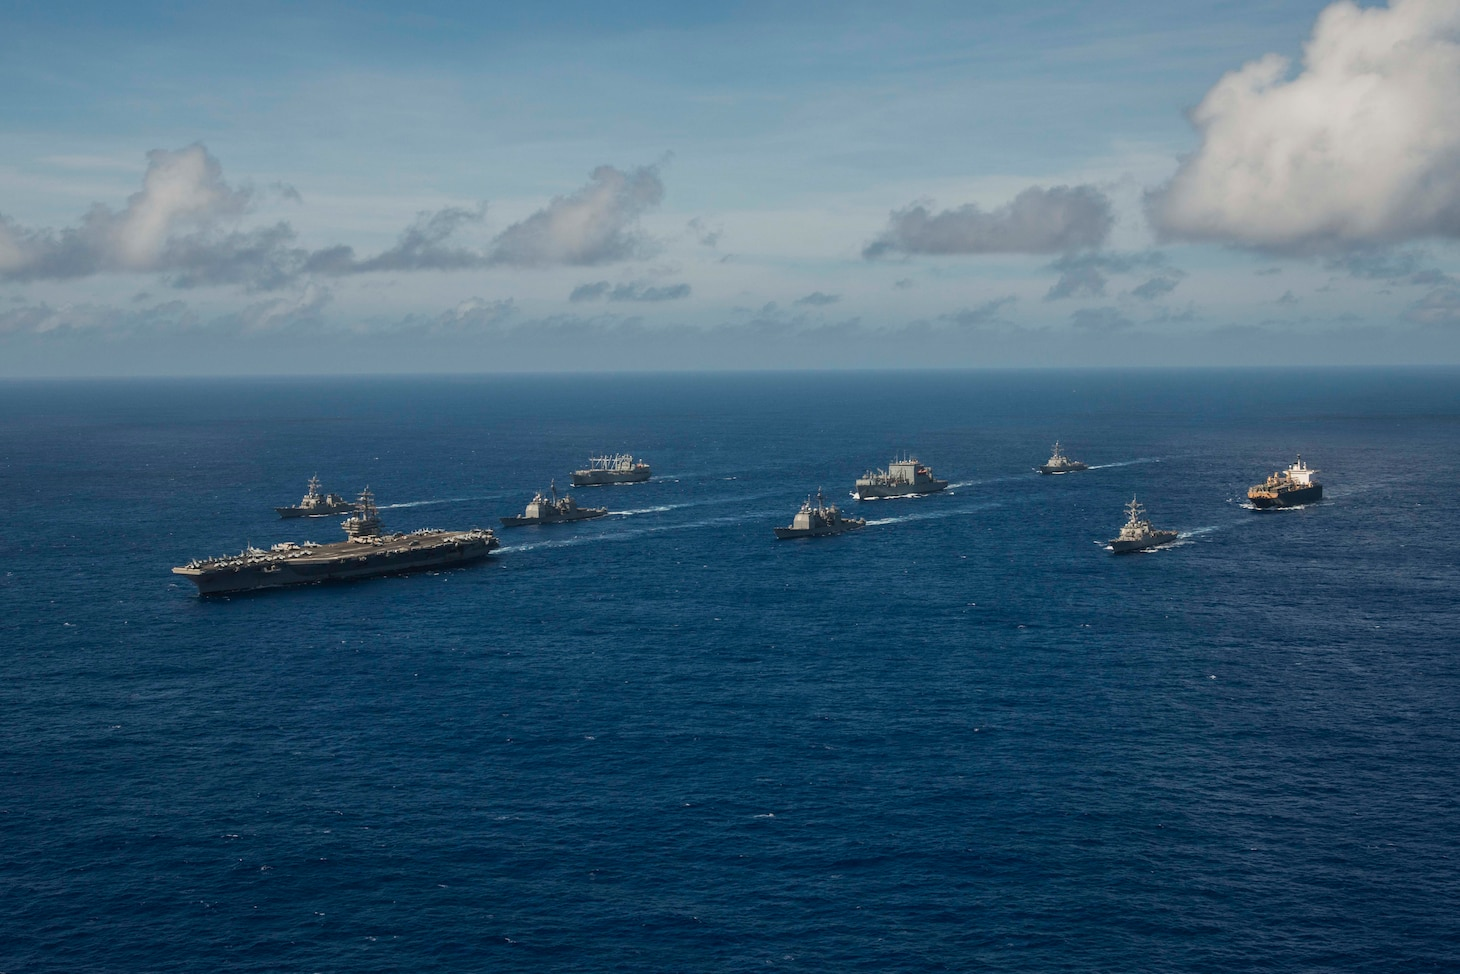 (Sept. 17, 2018) The aircraft carrier USS Ronald Reagan (CVN 76) leads the Ronald Reagan Strike group, including the Ticonderoga-class missile cruisers USS Antietam (CG 54) and USS Chancellorsville (CG 62) and the Arleigh Burke-class guided-missile destroyers USS Benfold (DDG 65) and USS Milius (DDG 69), during a photo exercise for Valiant Shield 2018.